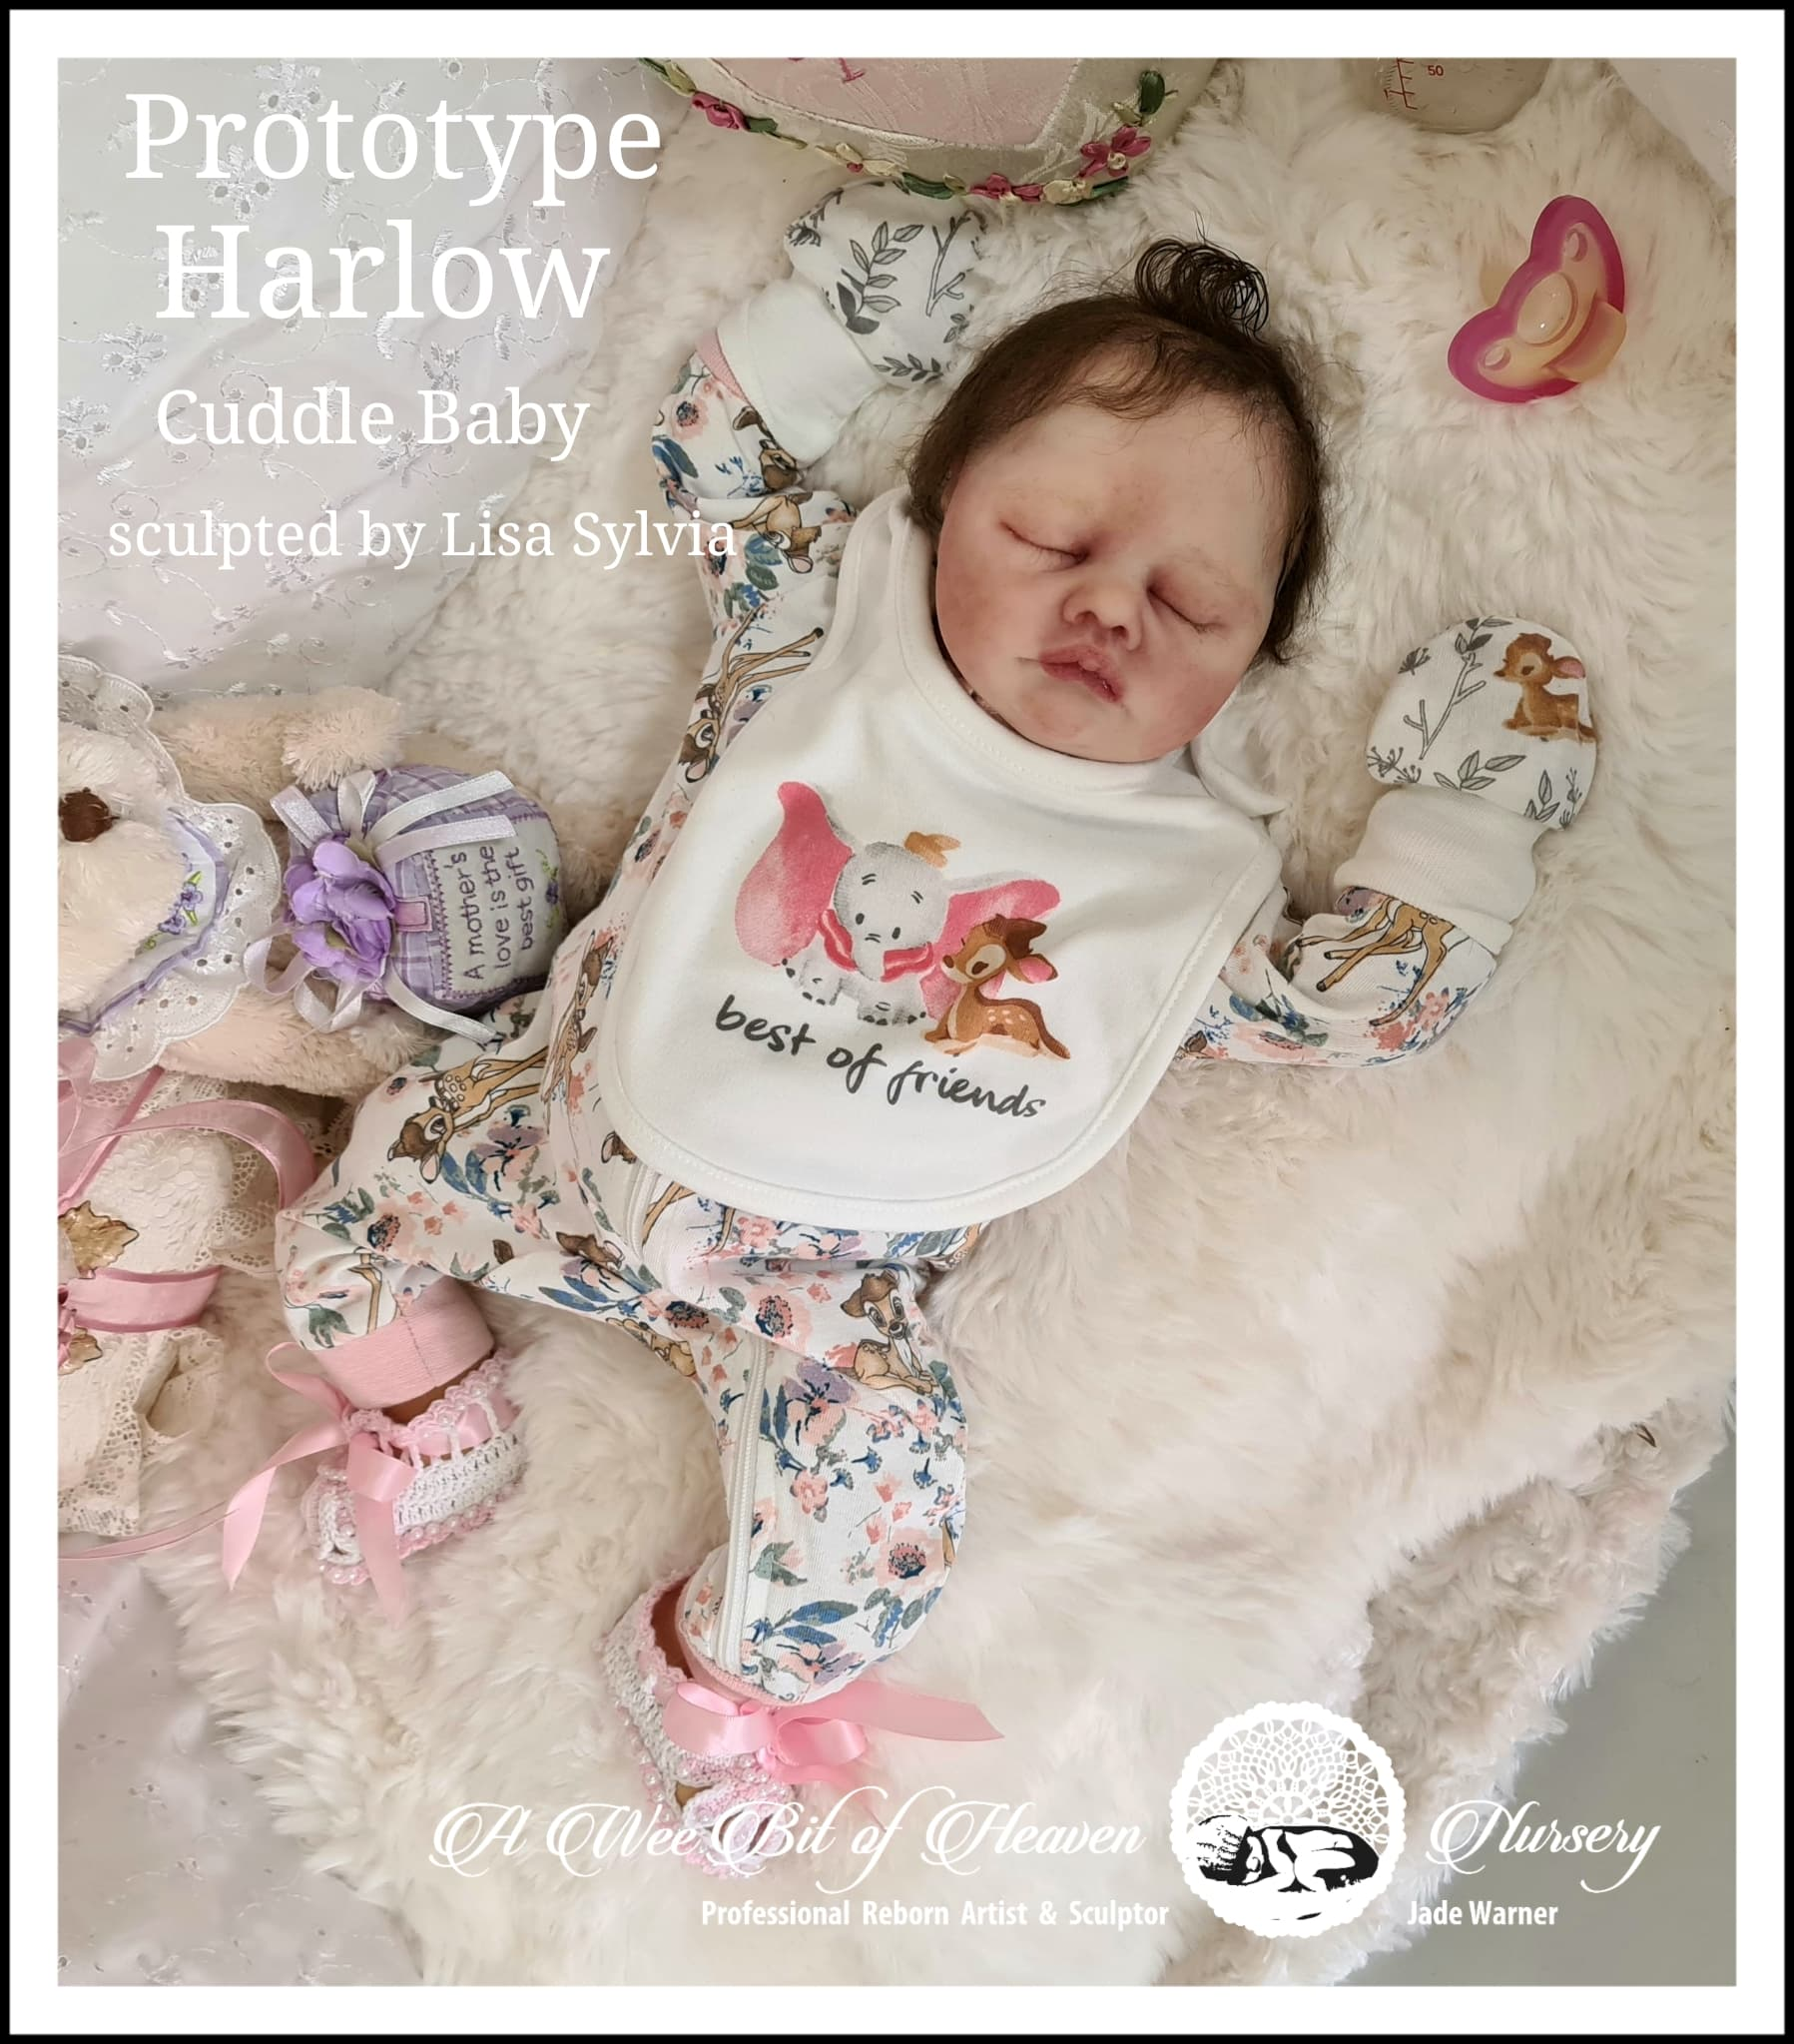 Silicone Cuddle Baby  Harlow sculpted by Lisa syliva --Prototype--